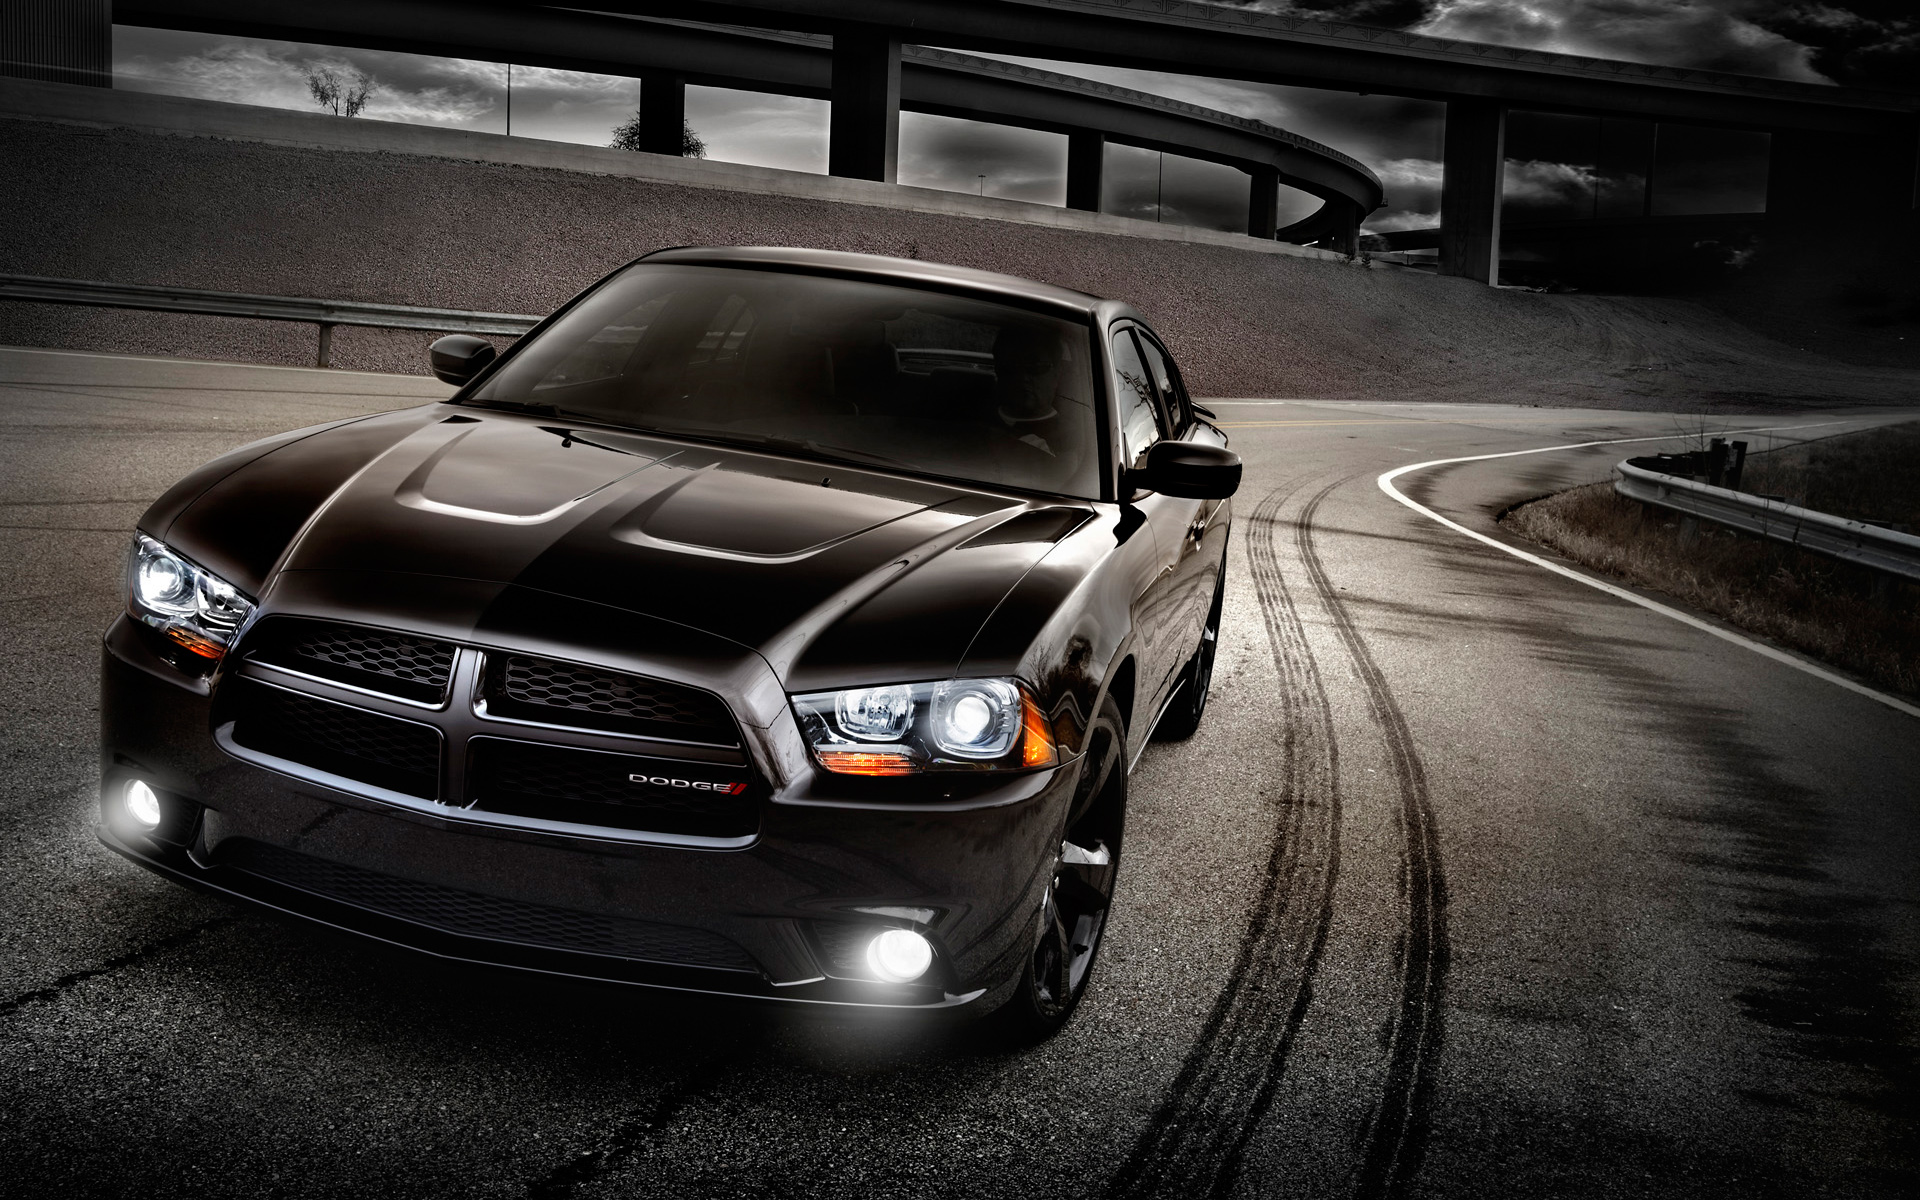 Dodge Charger RT wallpaper 1920x1200